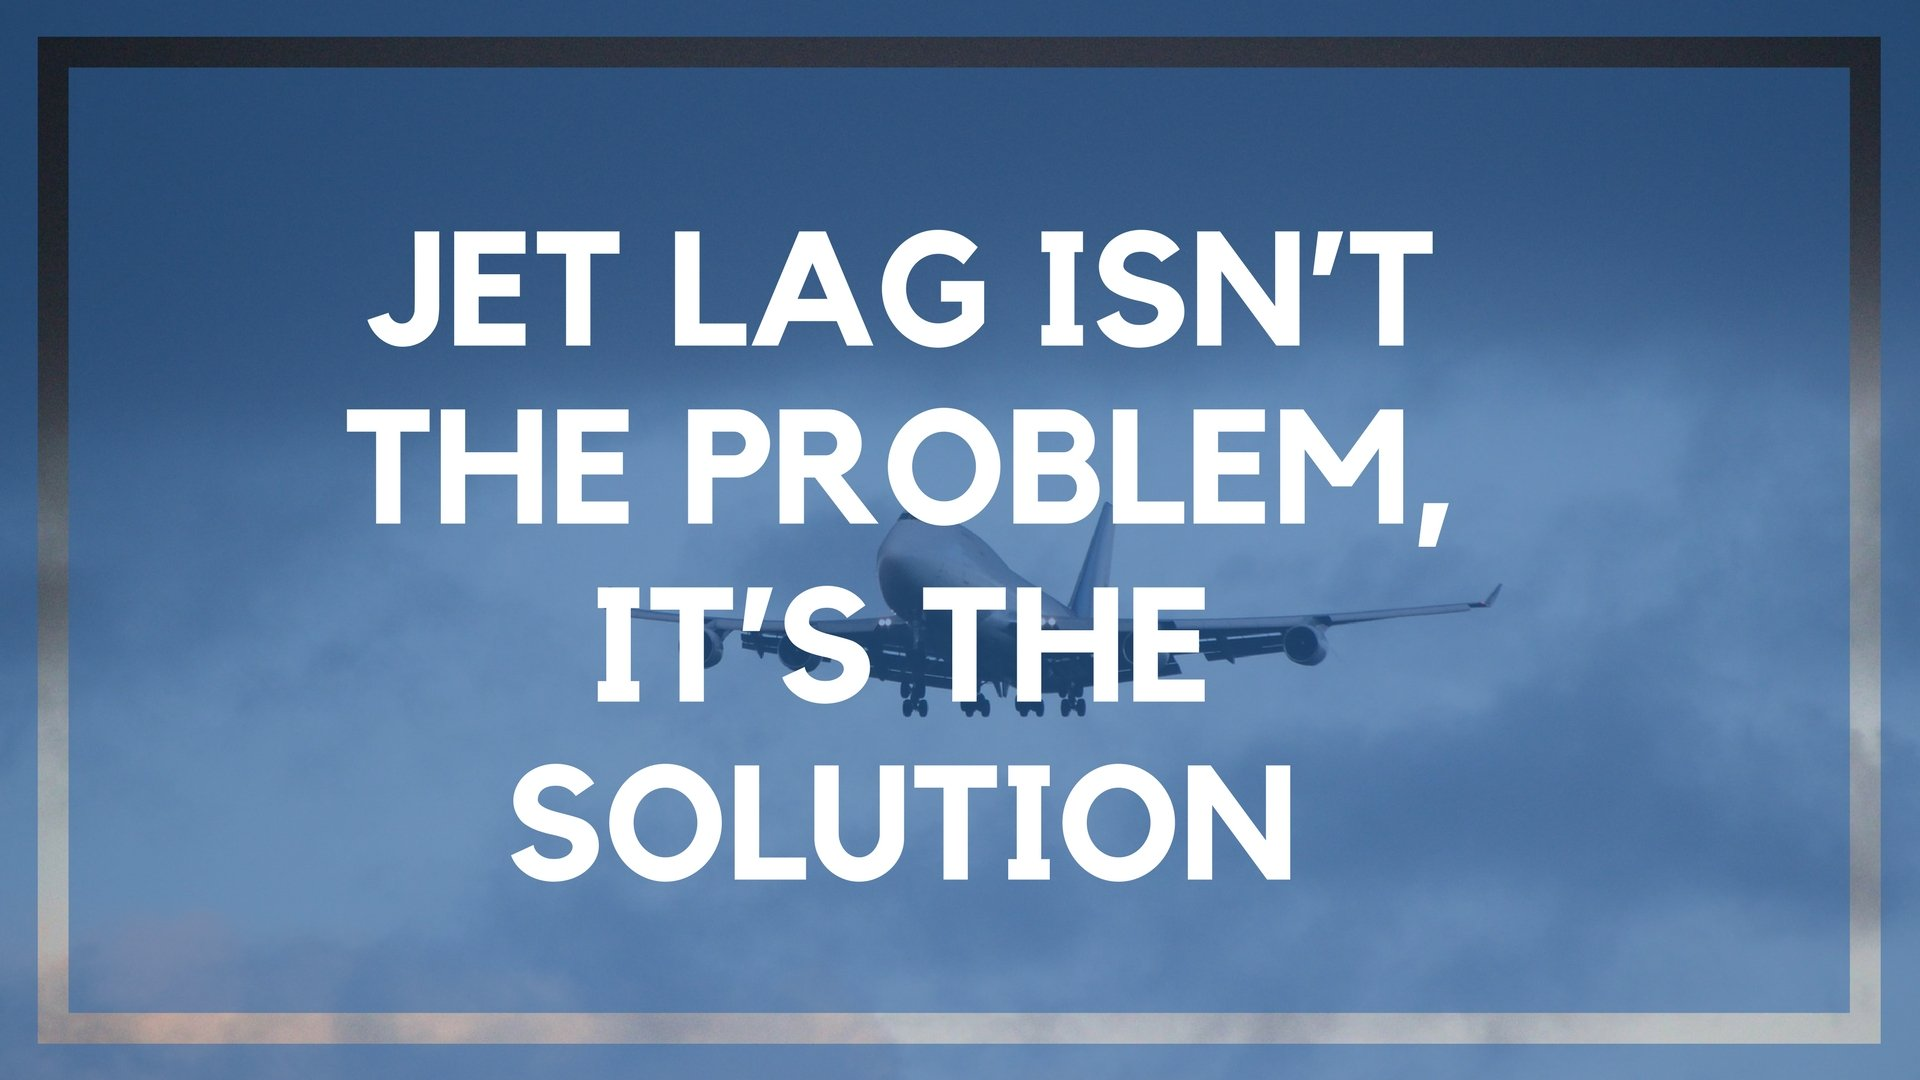 How to Get Over Jet Lag (And Why You Shouldn't Want to)